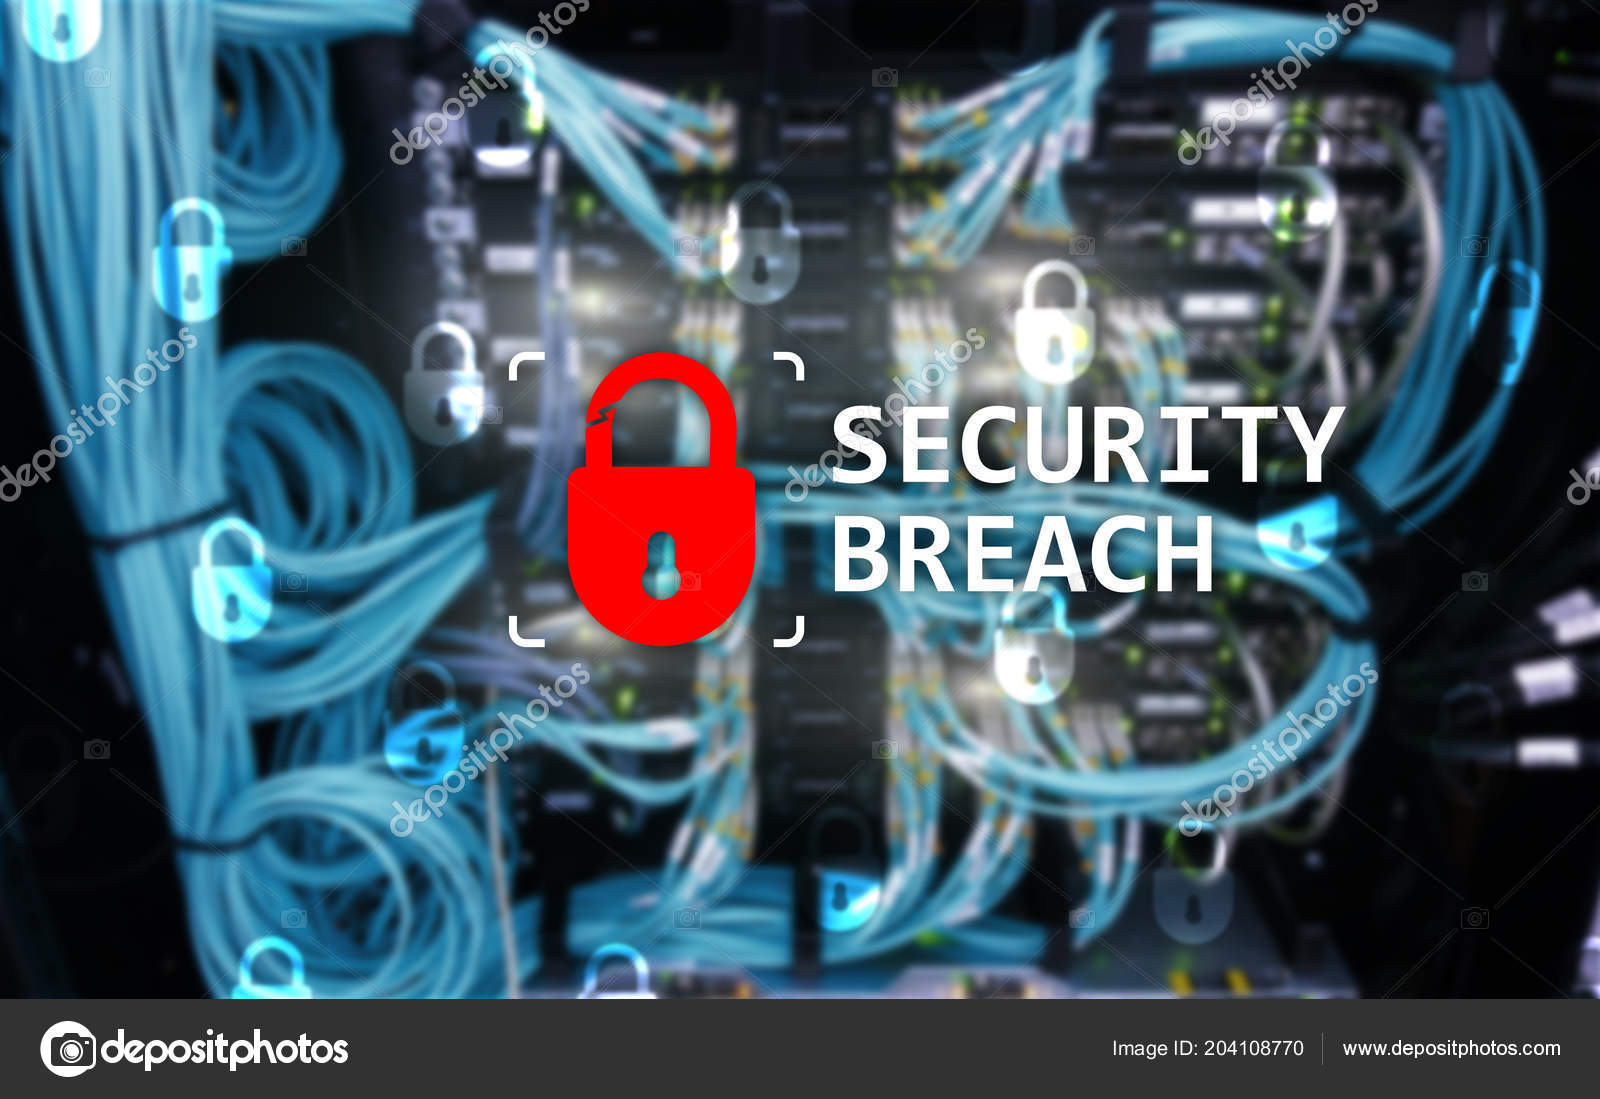 security breach at tjx Security breach at tjx case study solution & analysis in most courses studied at harvard business schools, students are provided with a case study major hbr cases concerns on a whole industry, a whole organization or some part of organization profitable or non-profitable organizations.